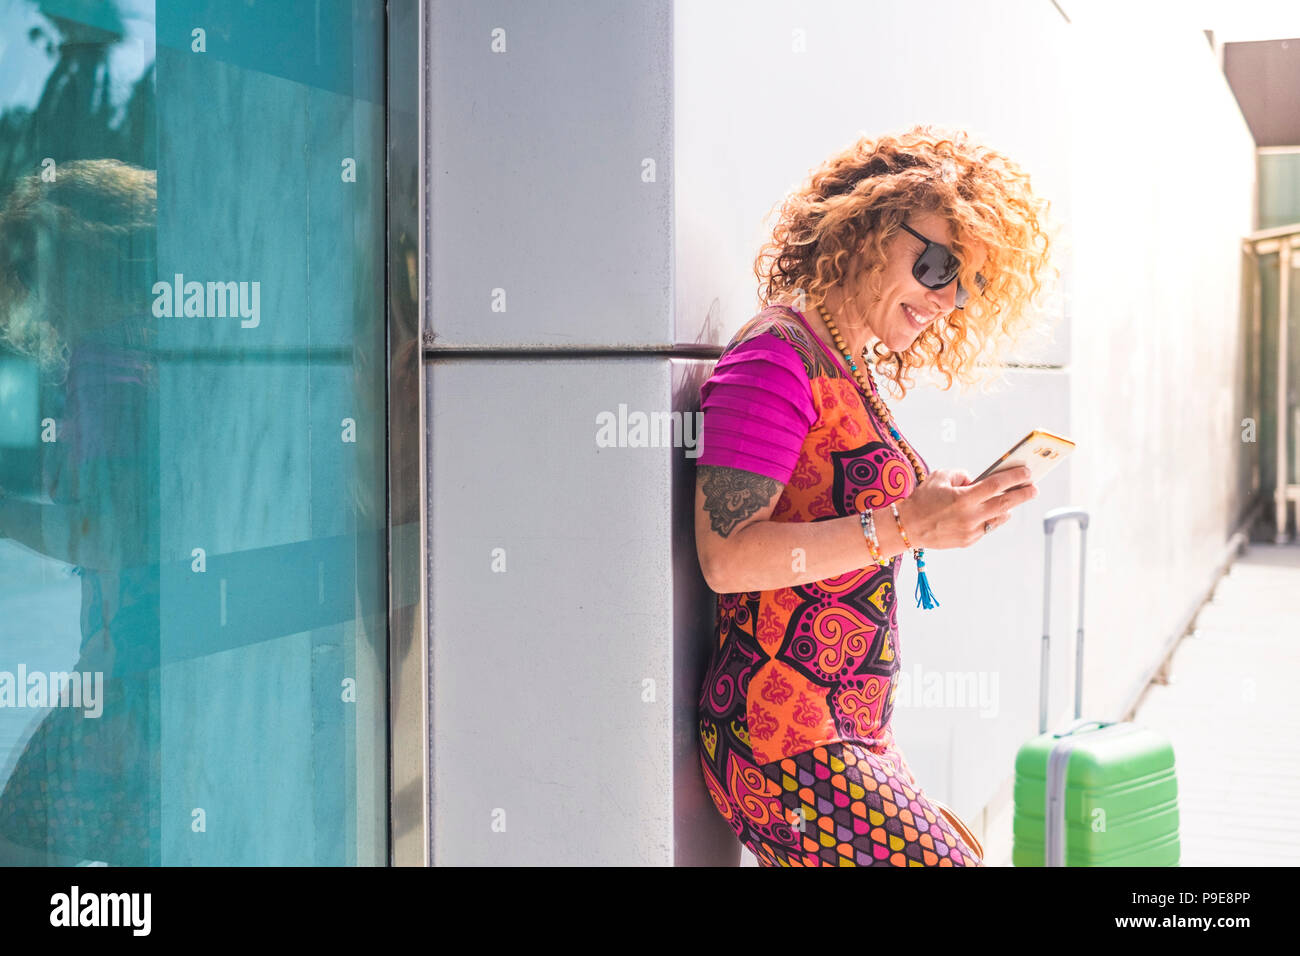 beautiful young female outside the airport using mobile phone with internet messaging . standing with luggages. business or vacation travel concept fo - Stock Image